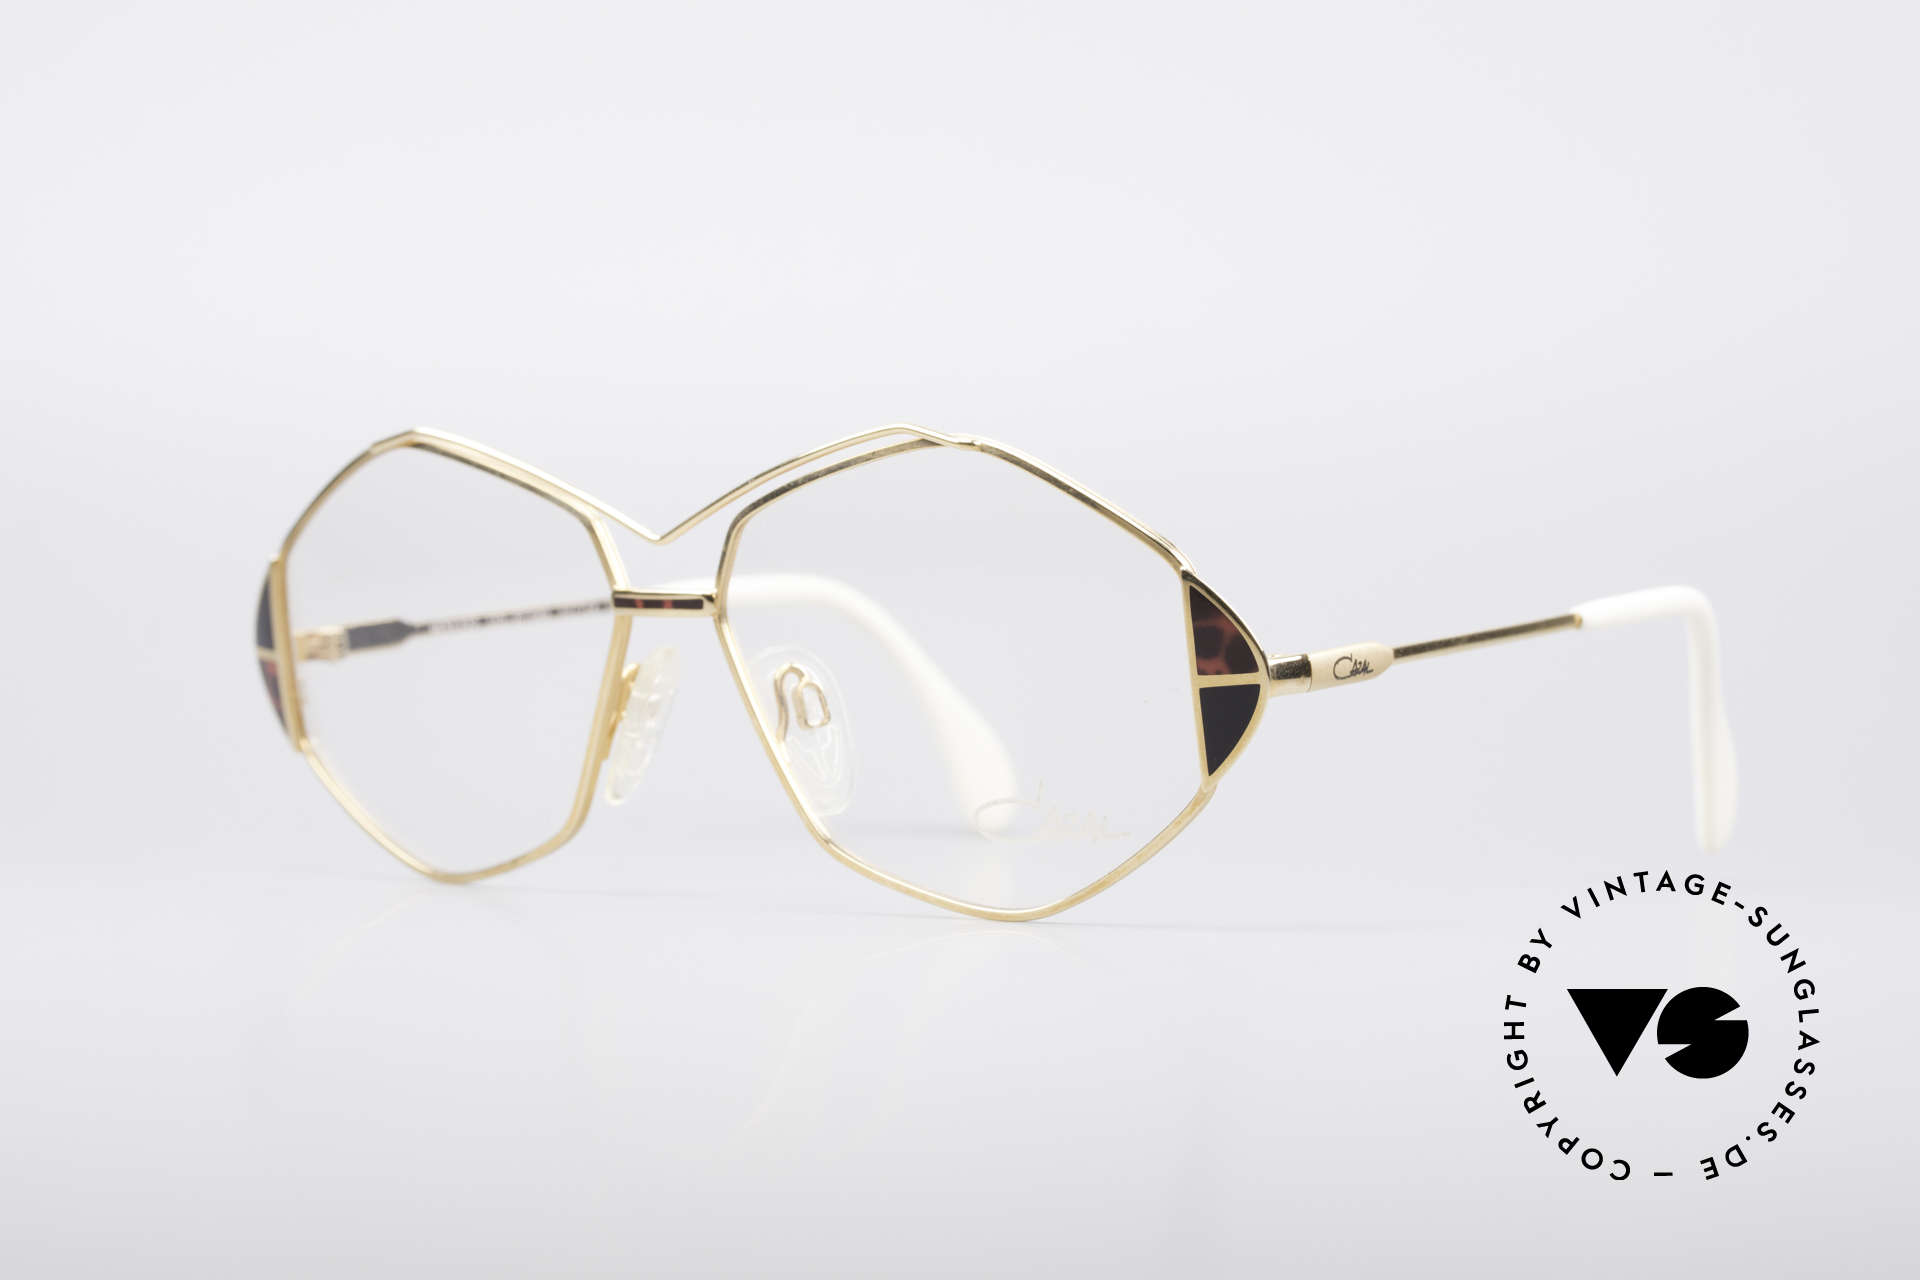 Cazal 233 True Vintage No Retro Specs, great frame design with elaborate color accents, Made for Women